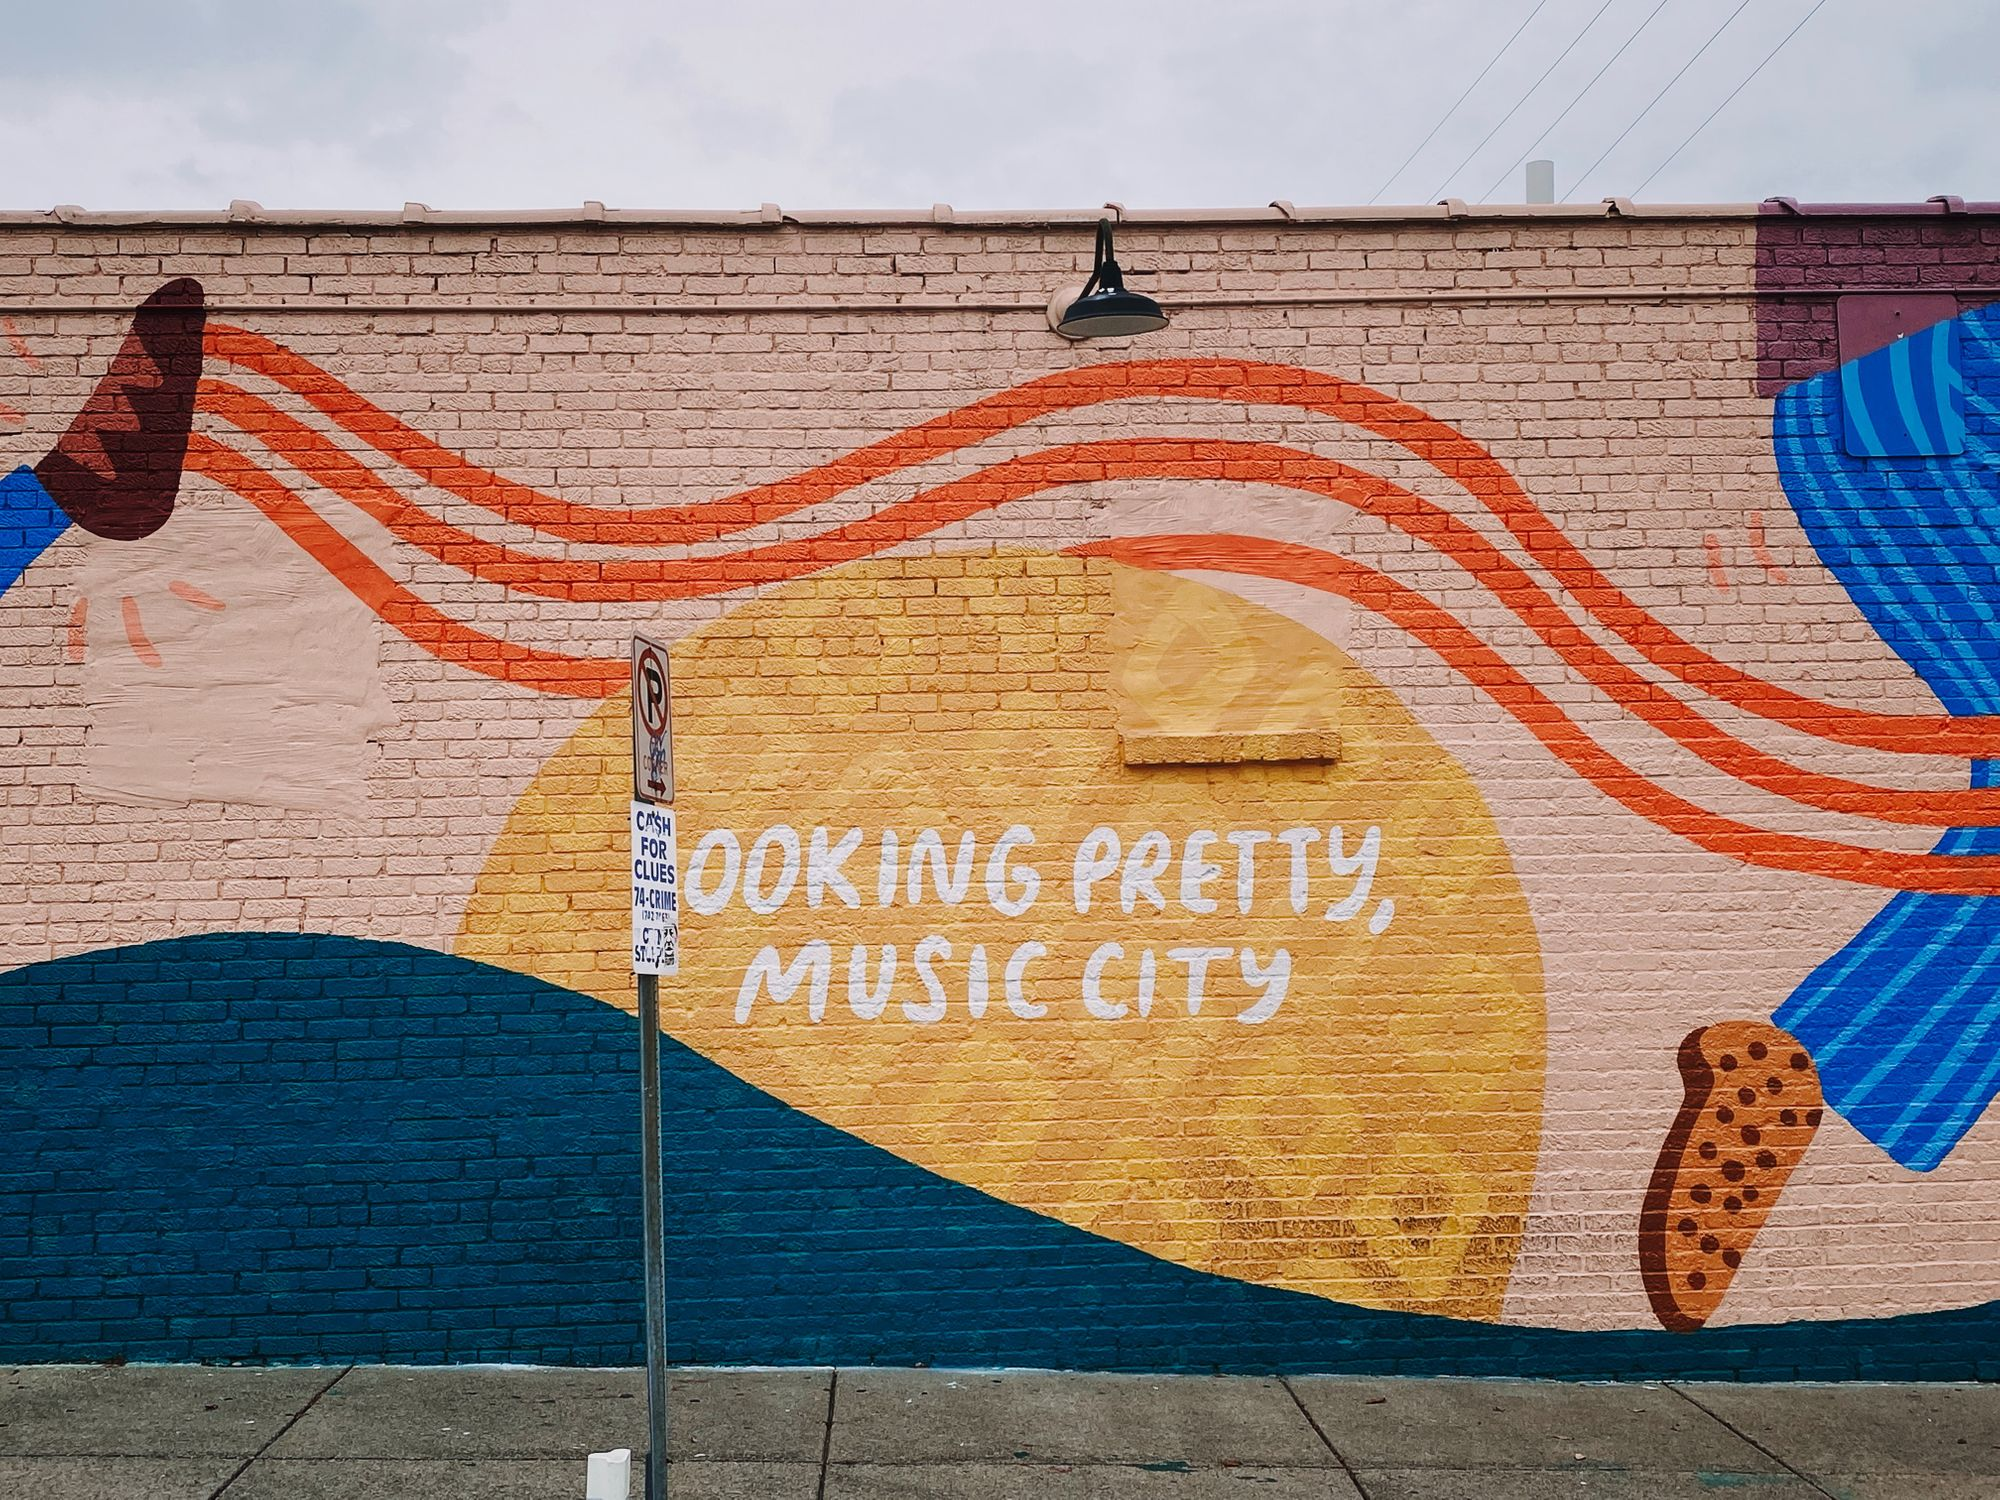 Looking Pretty Music City sign